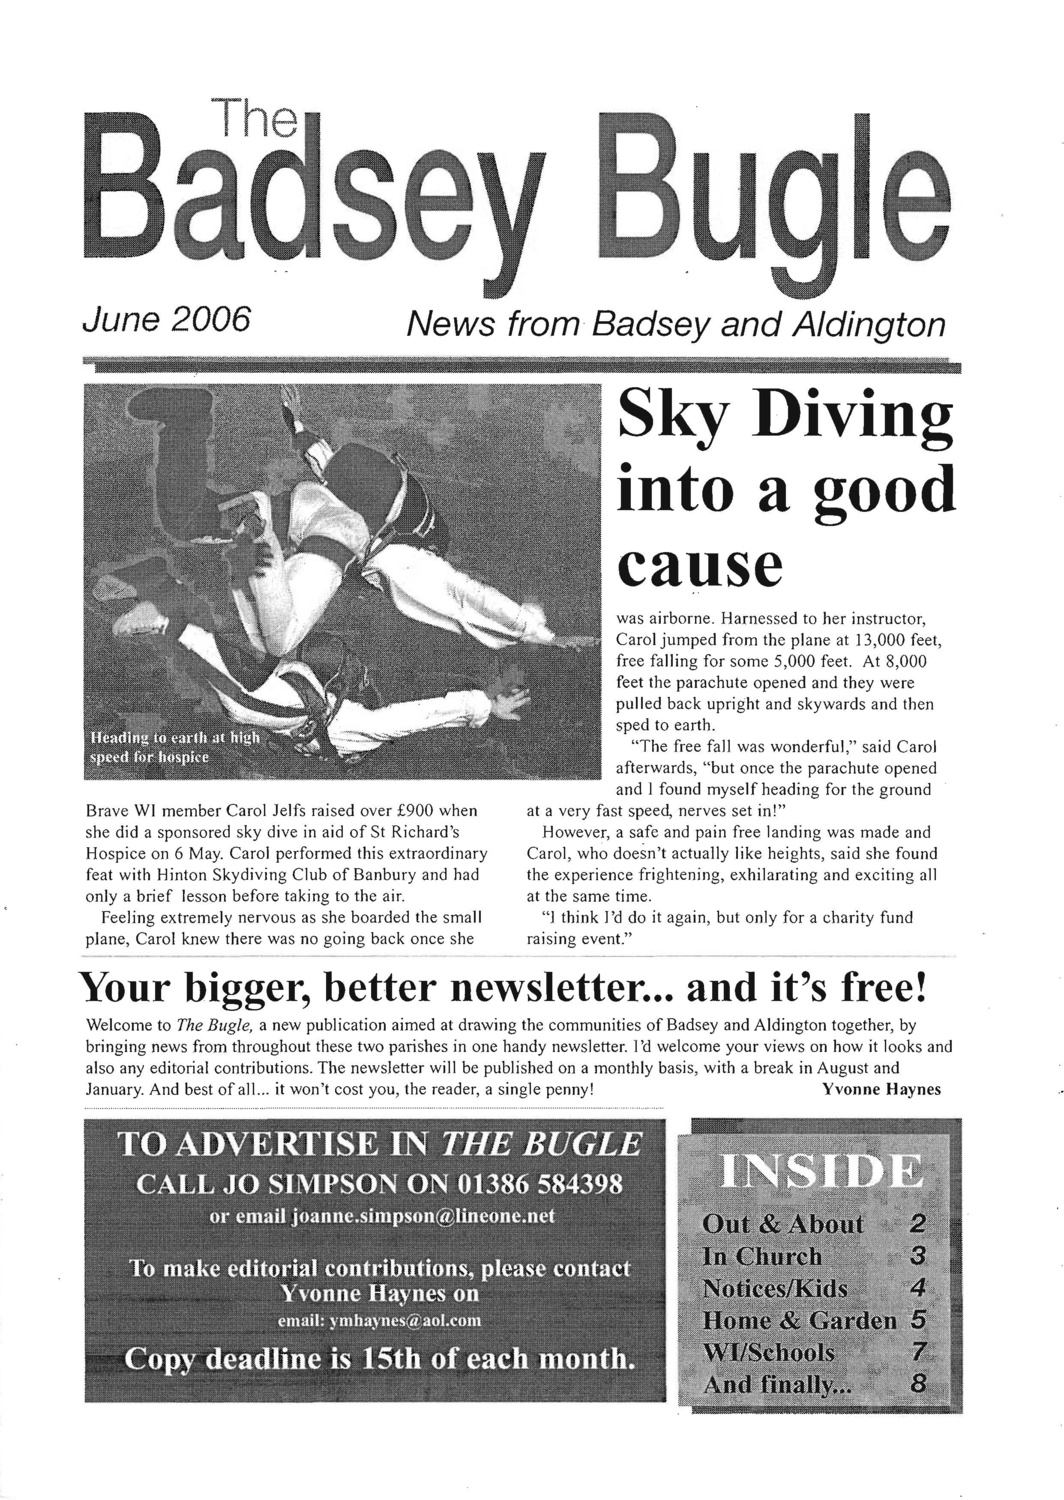 The Badsey Bugle, June 2006